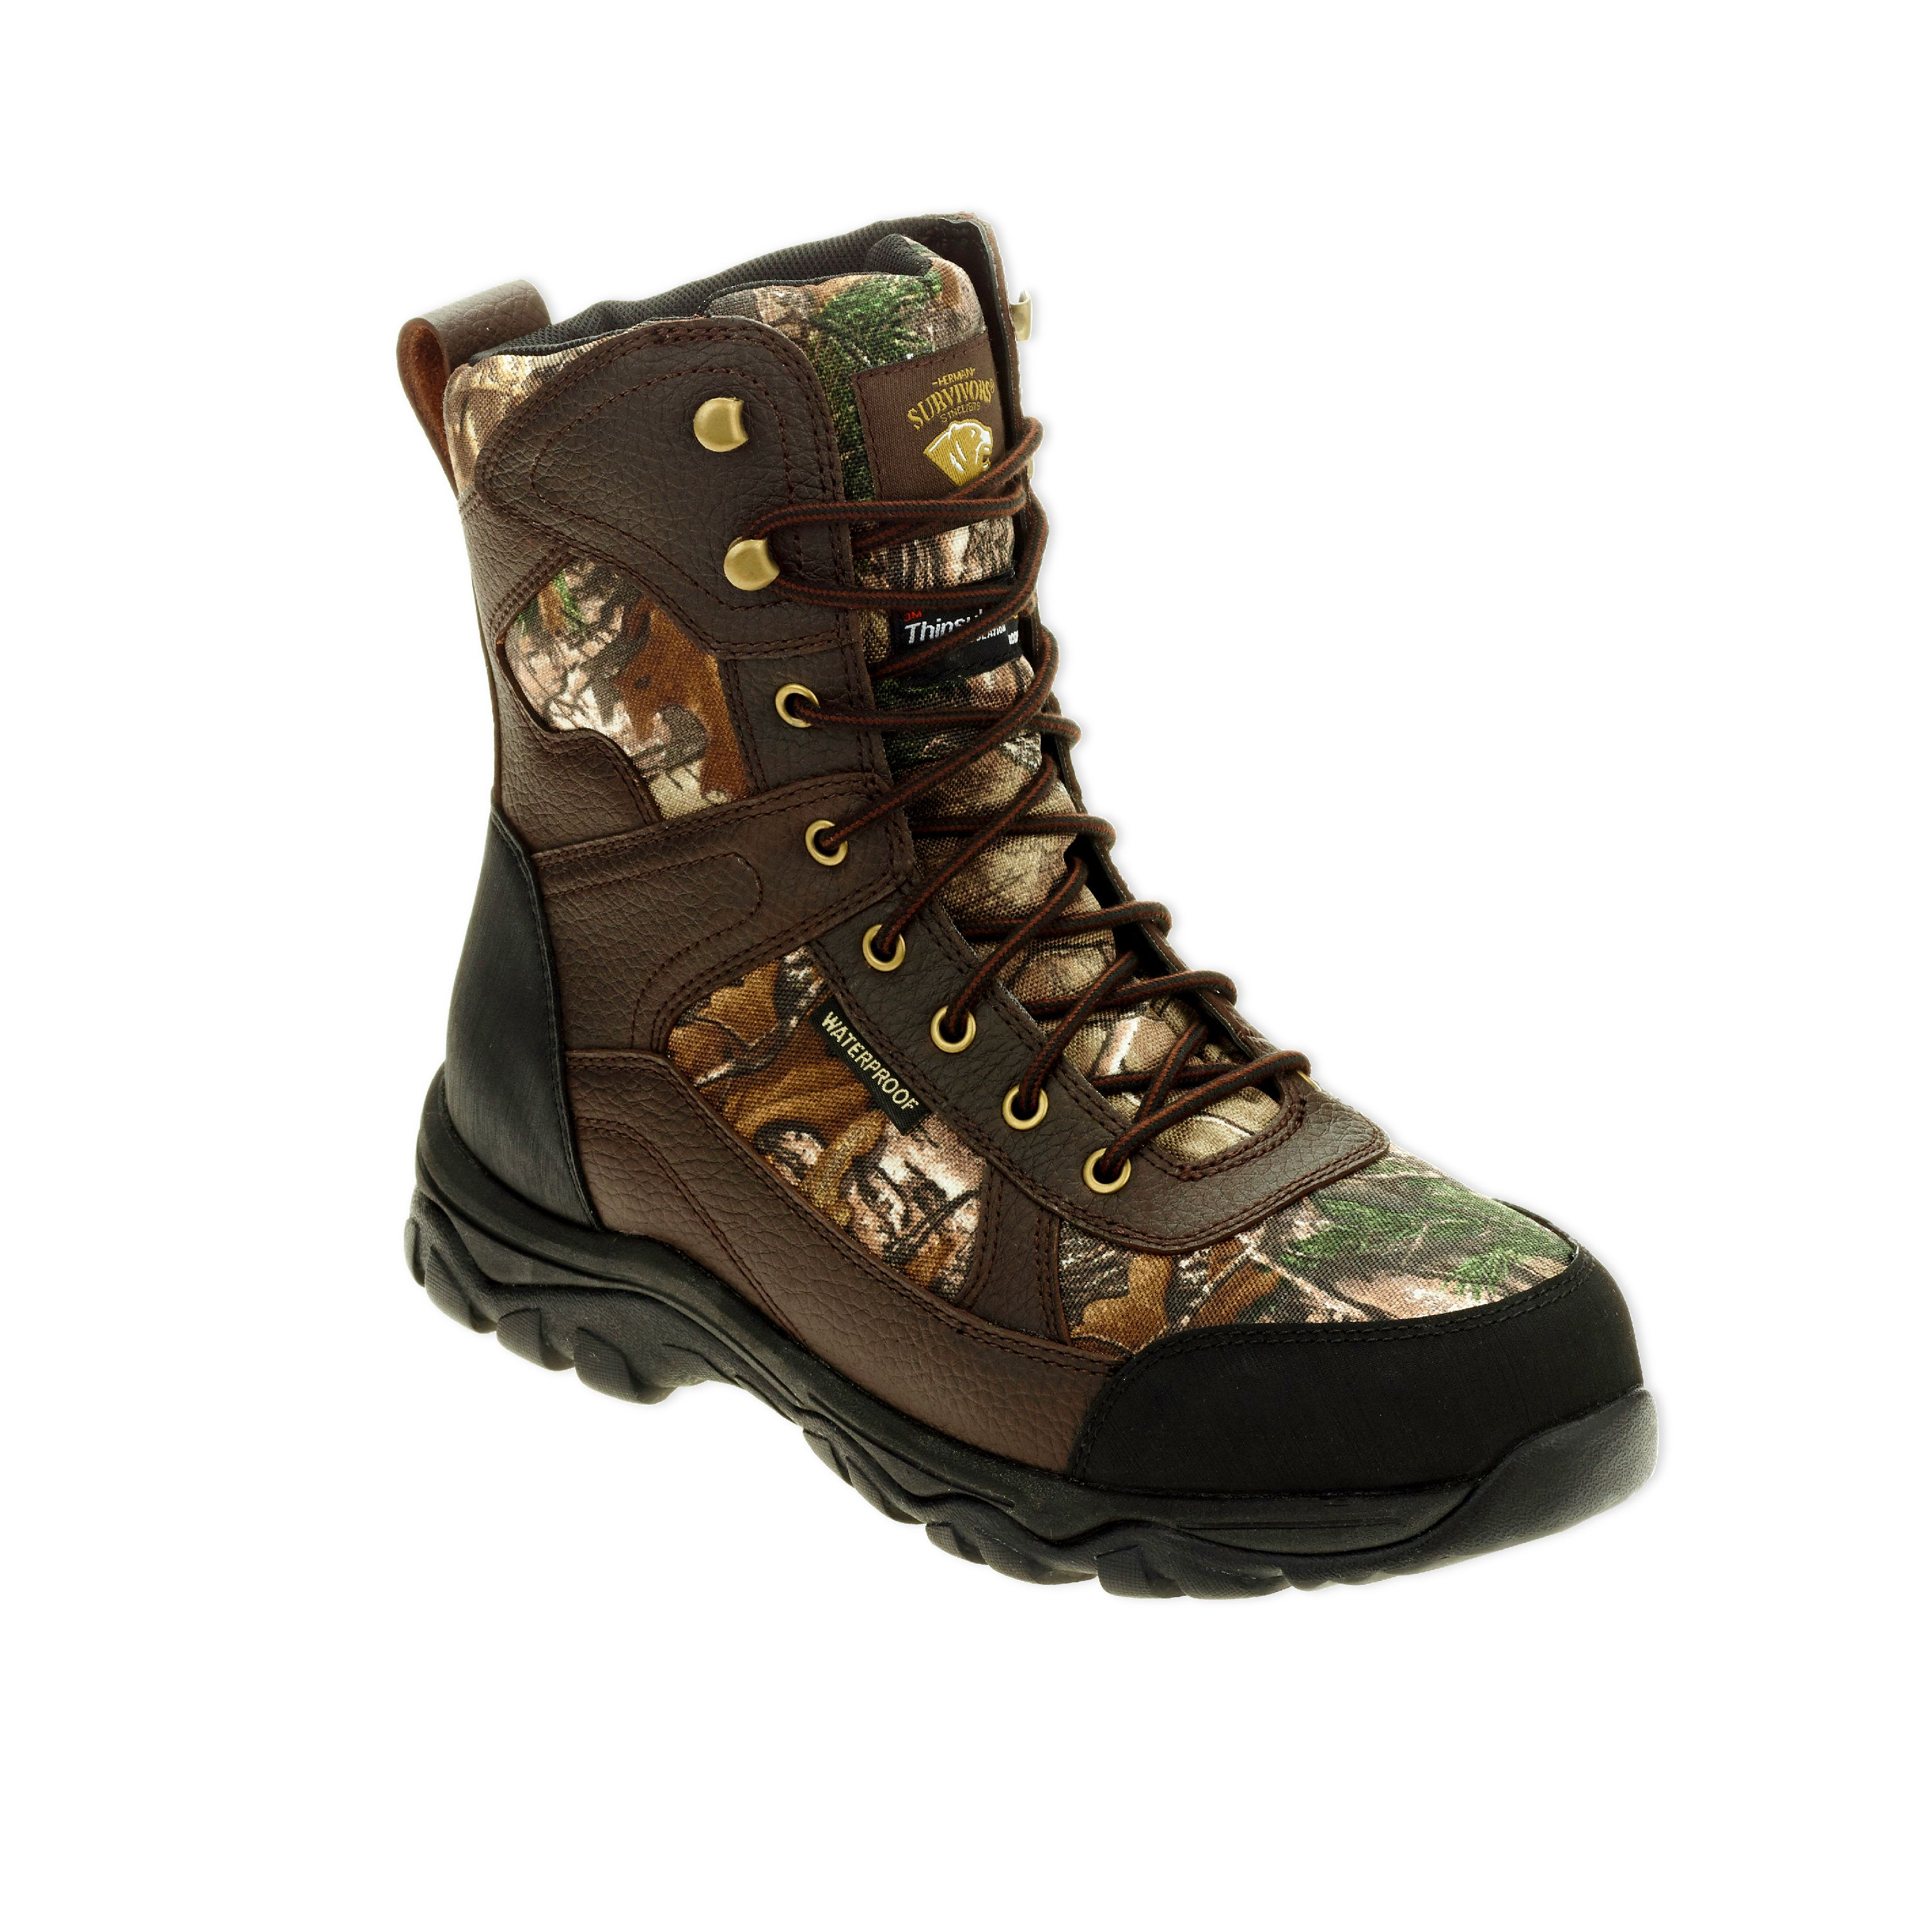 "Herman Survivors Men's 8"" Camo Hunting Boot"